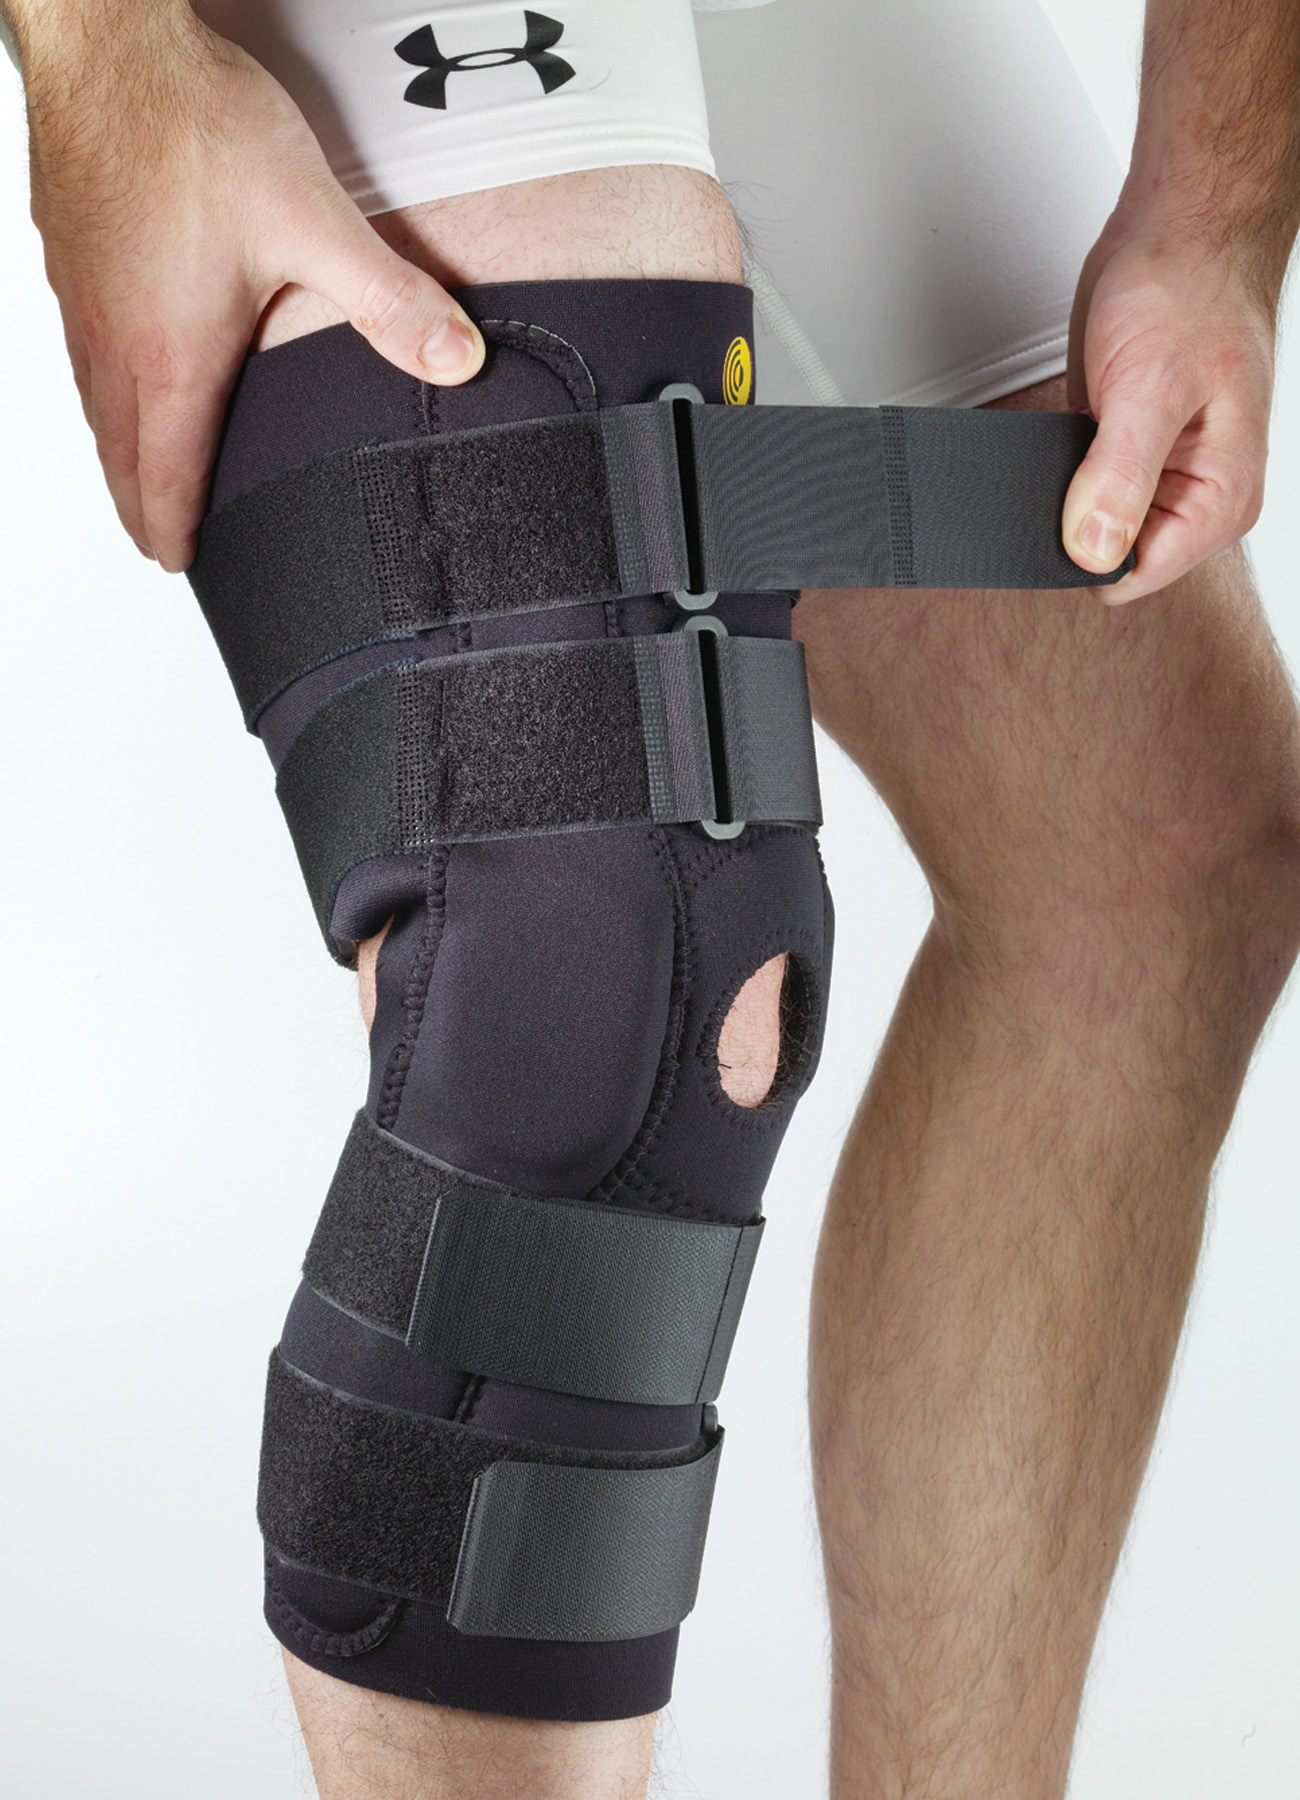 Posterior Adjustable Knee Sleeve w/R.O.M. Hinge